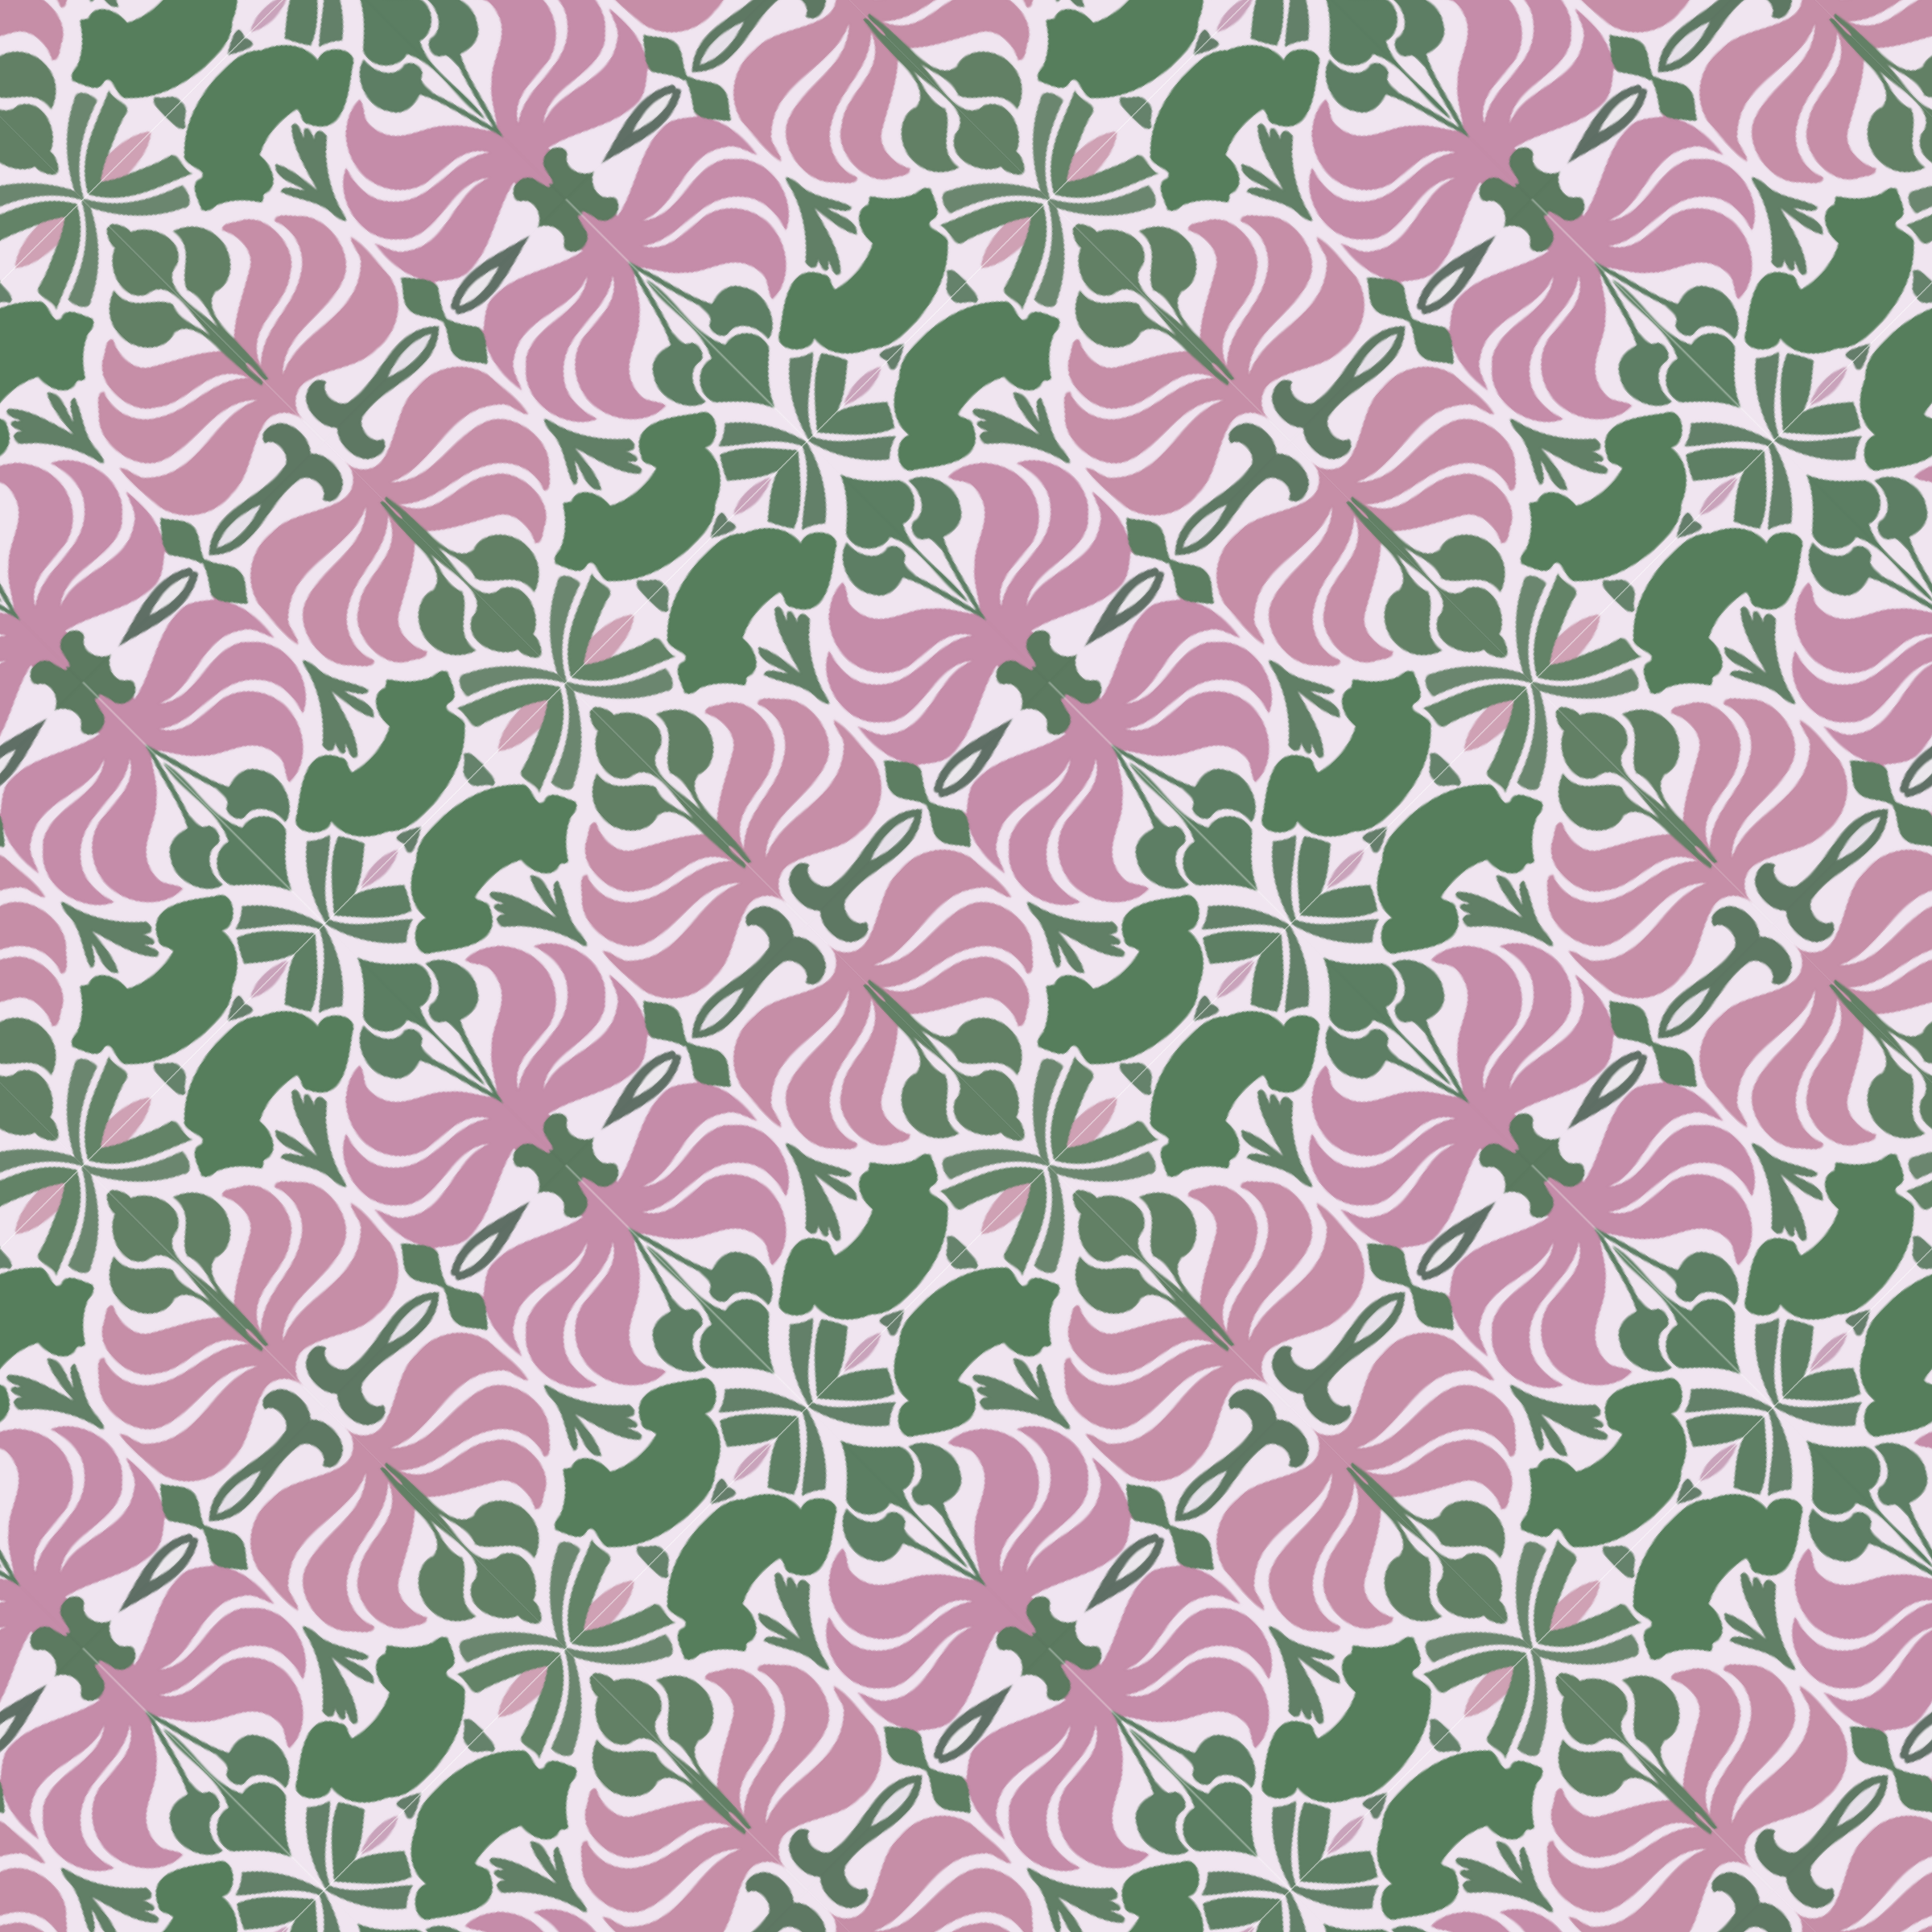 Background pattern 167 (colour 3) by Firkin